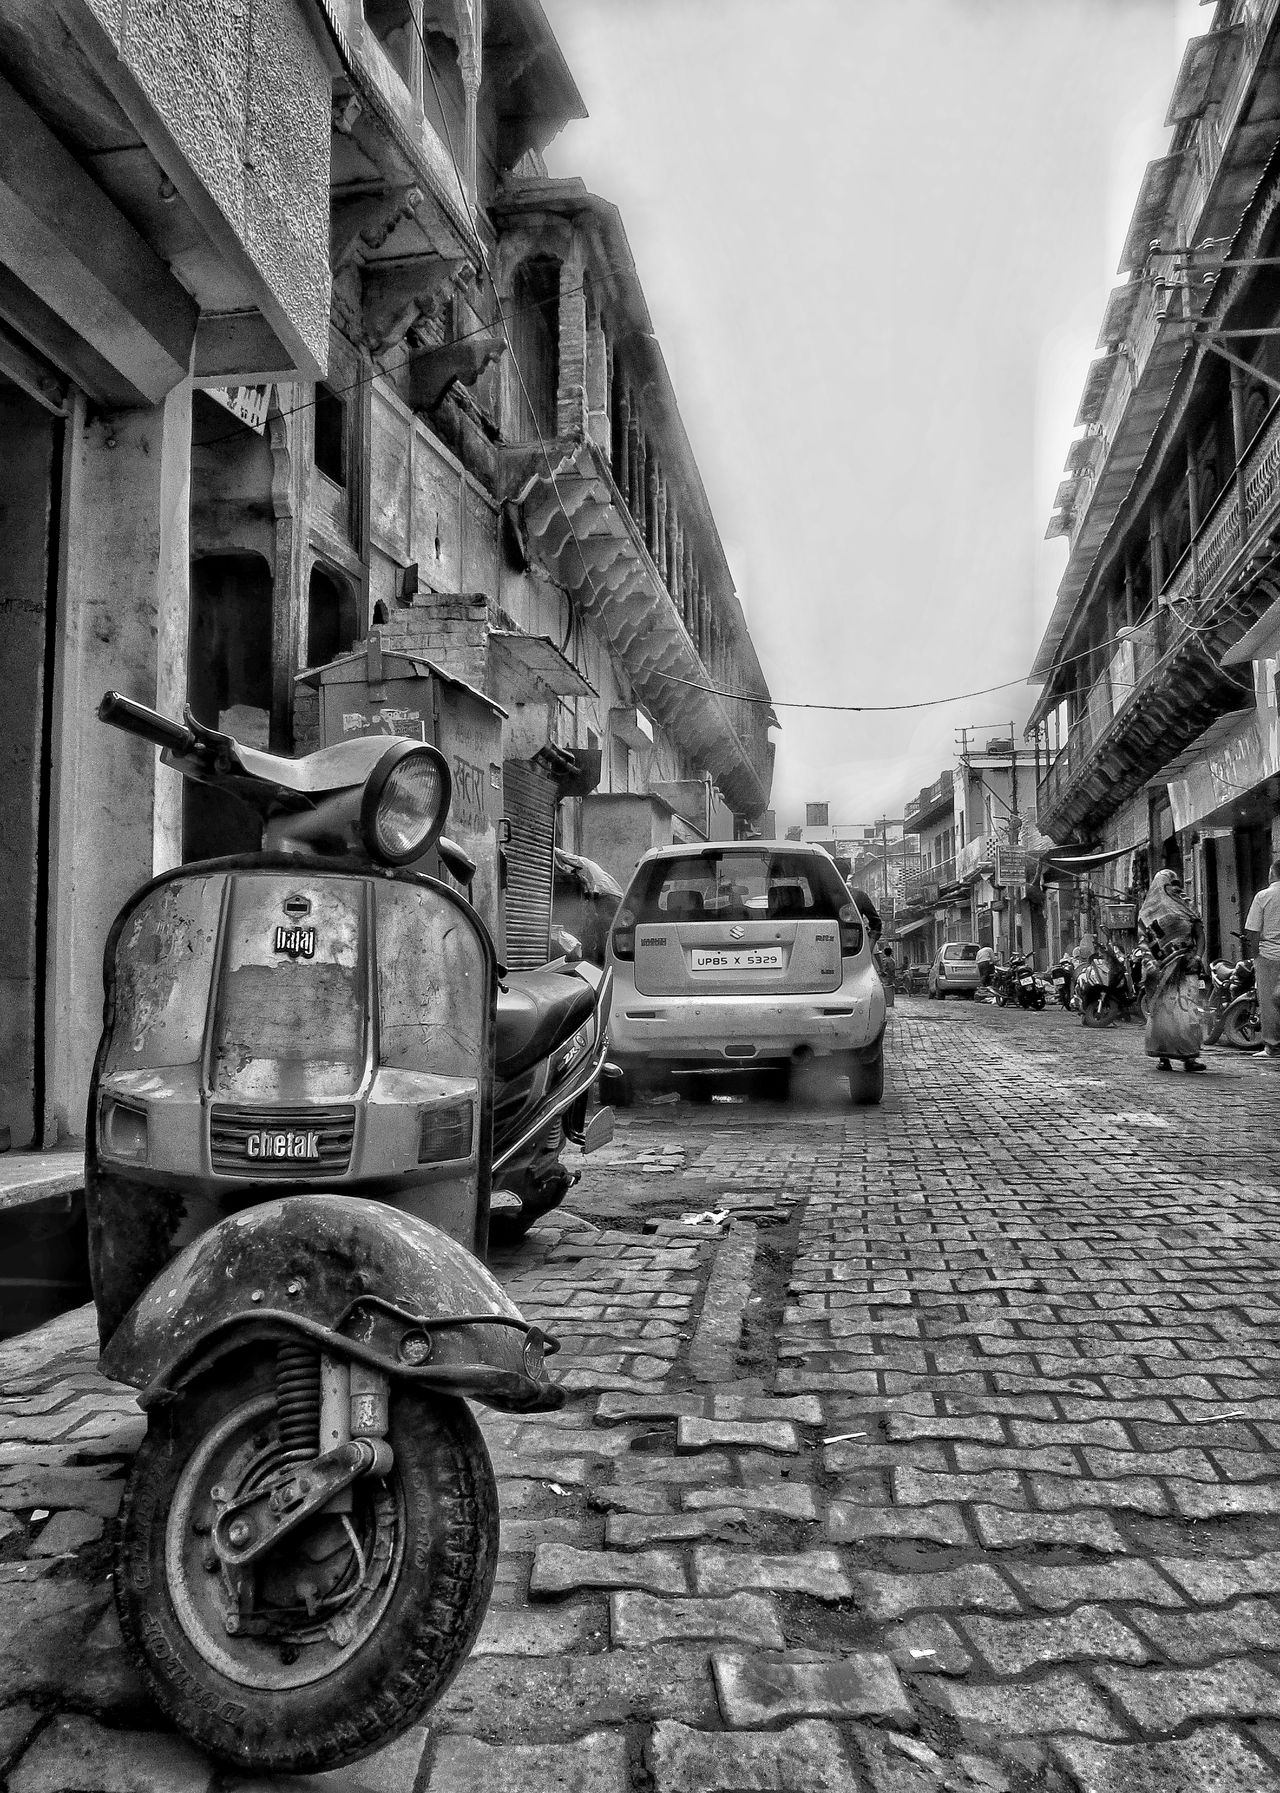 Bajaj never fails for a good shot. Bajaj Day Mathura Mode Of Transport Outdoors Scooter Street Street Photography Streetphoto_bw Streetphotographer Streetphotography